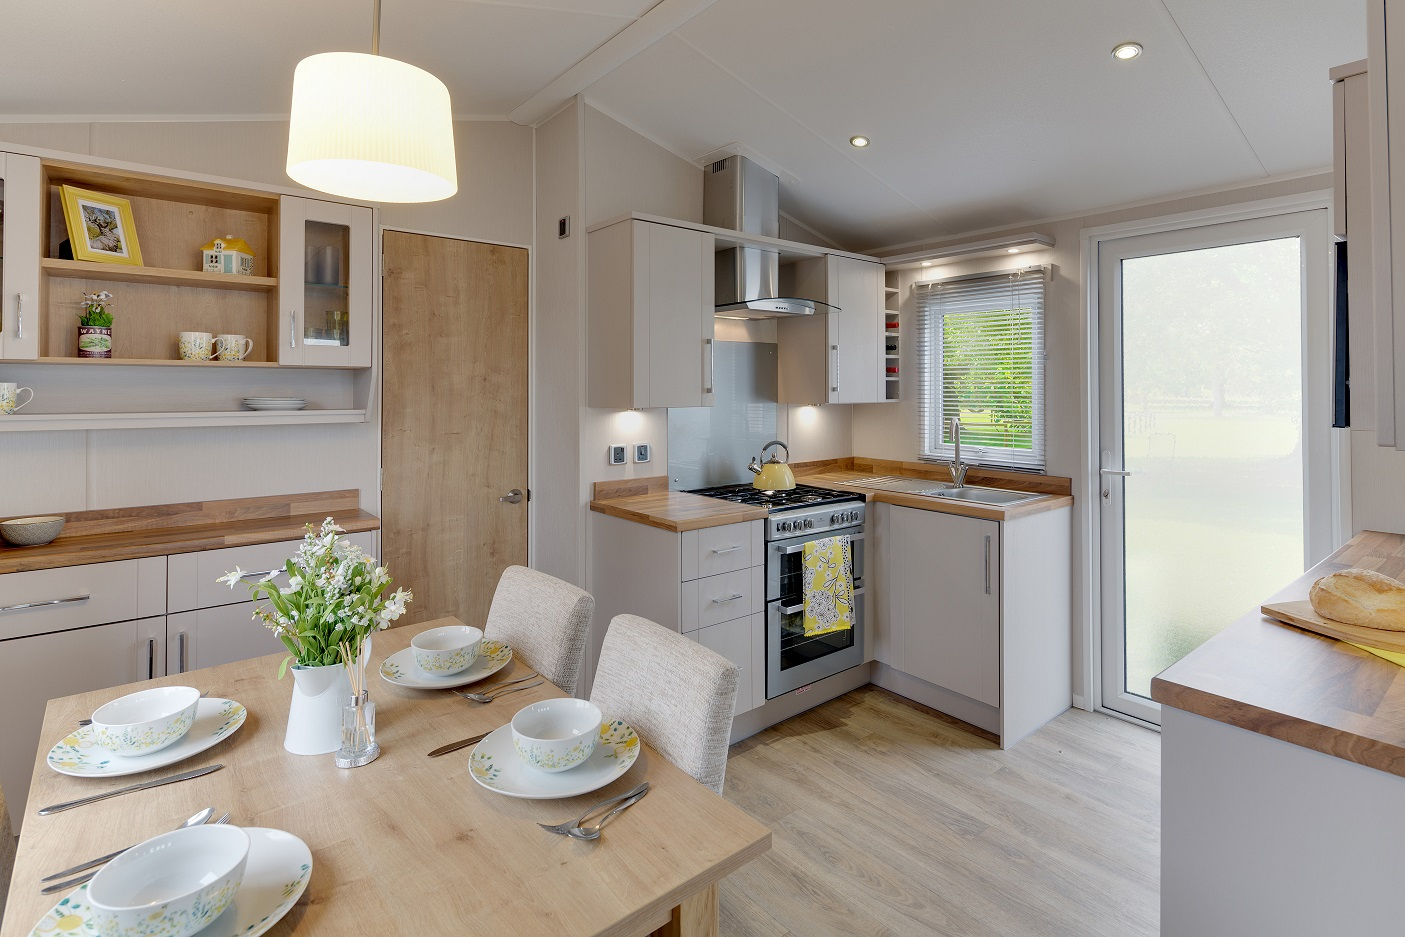 Willerby Winchester: Static Caravans and Holiday Homes for Sale on Caravan Parks, Nidderdale, North Yorkshire Image 1